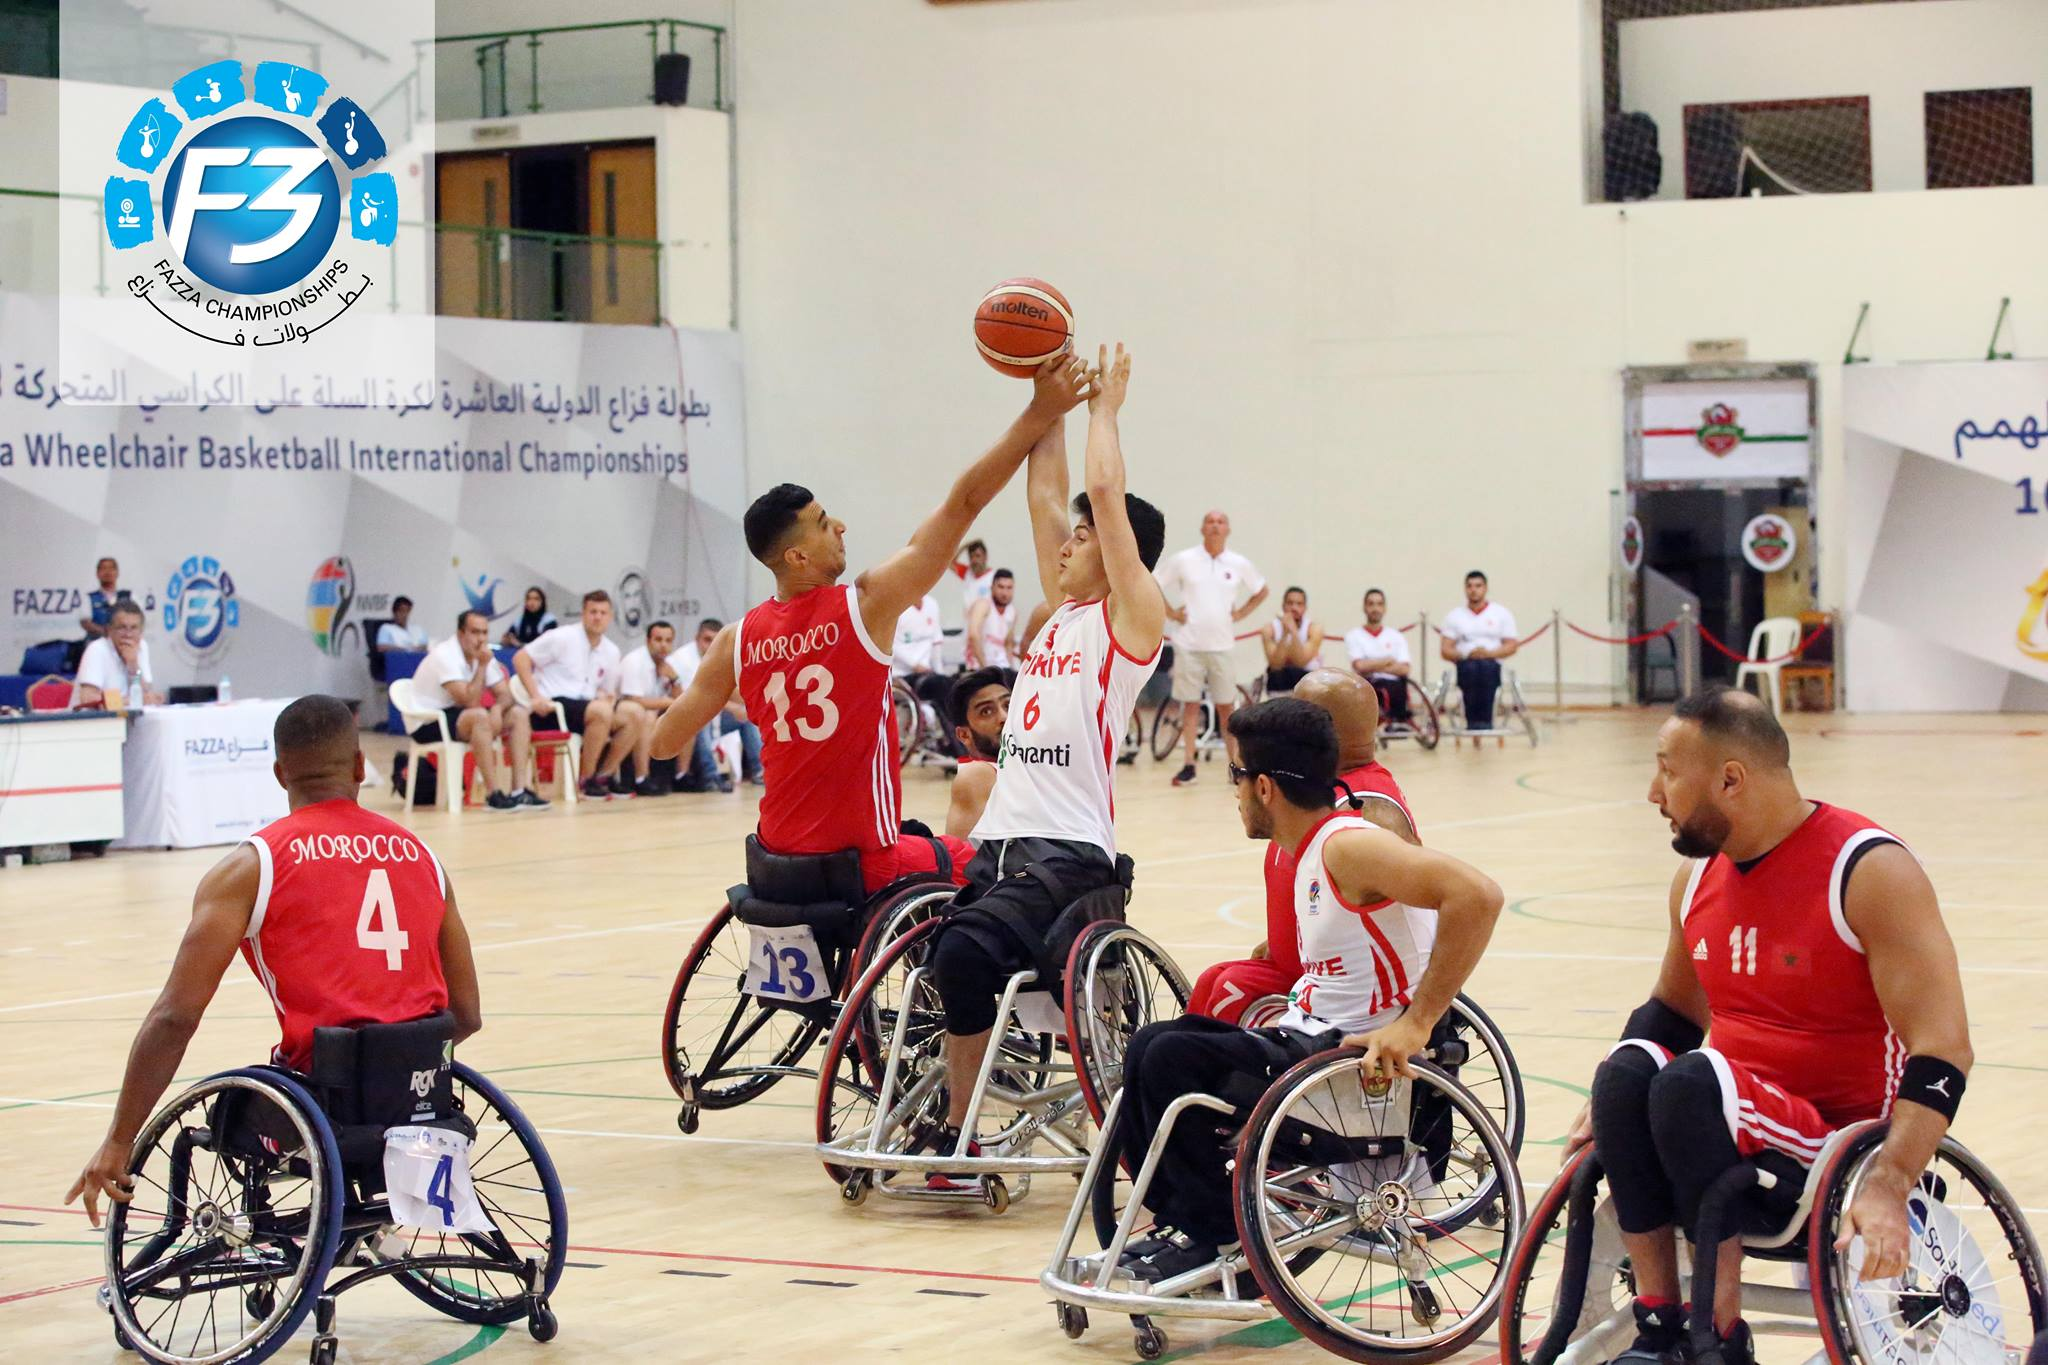 Turkey vs Morocco compete in the Fazza International Wheelchair Basketball Championships